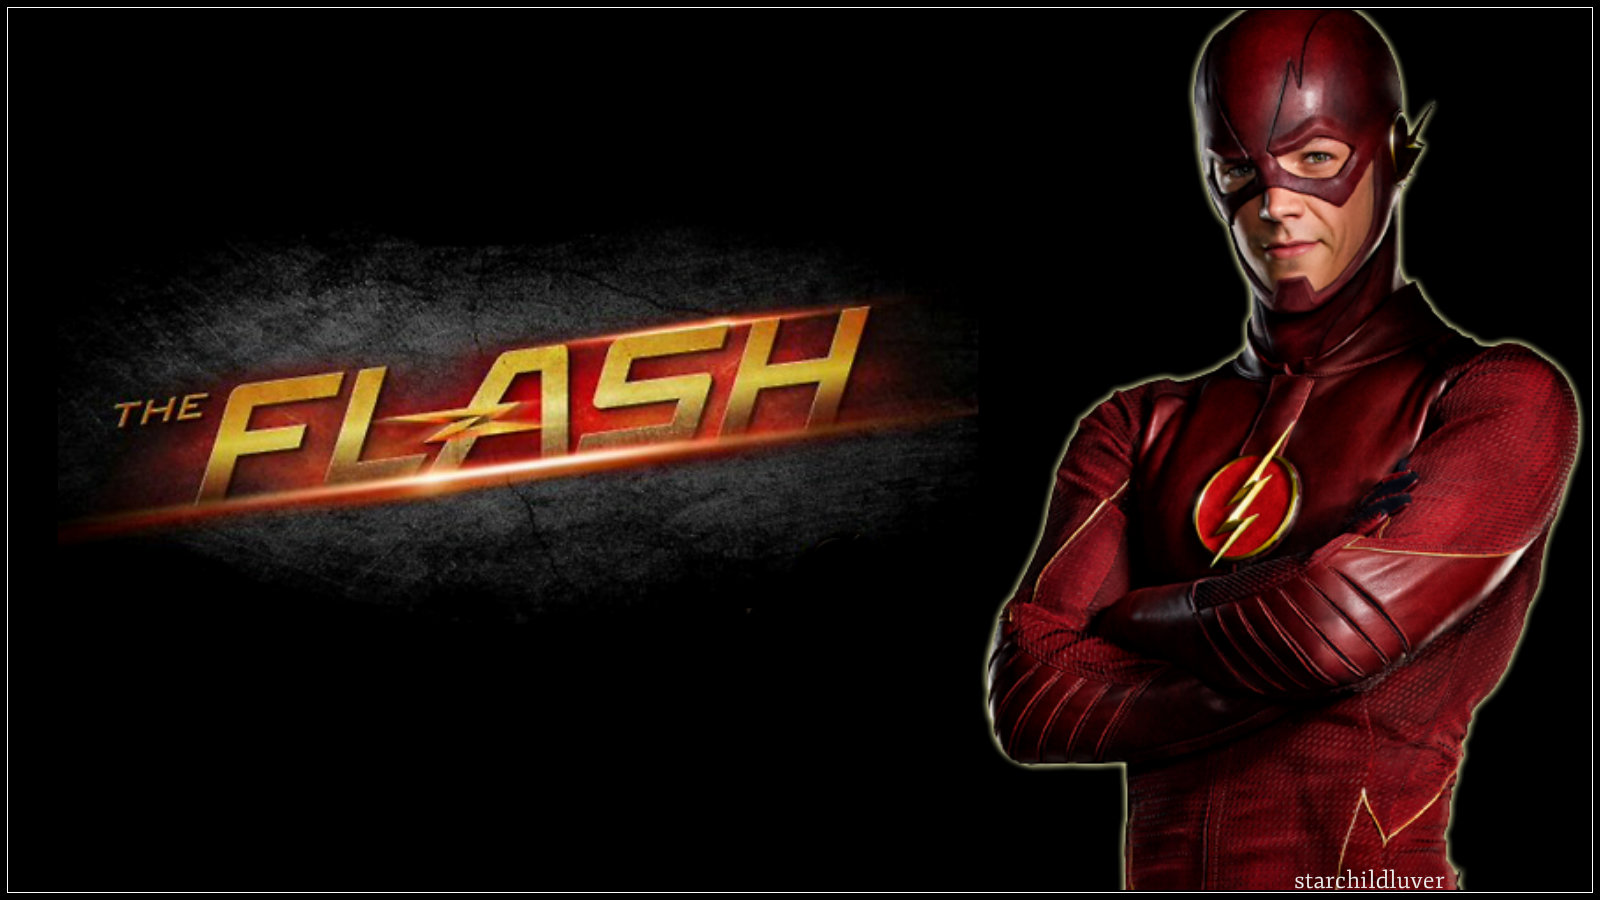 The Flash   The Flash CW Wallpaper 37771515 1600x900